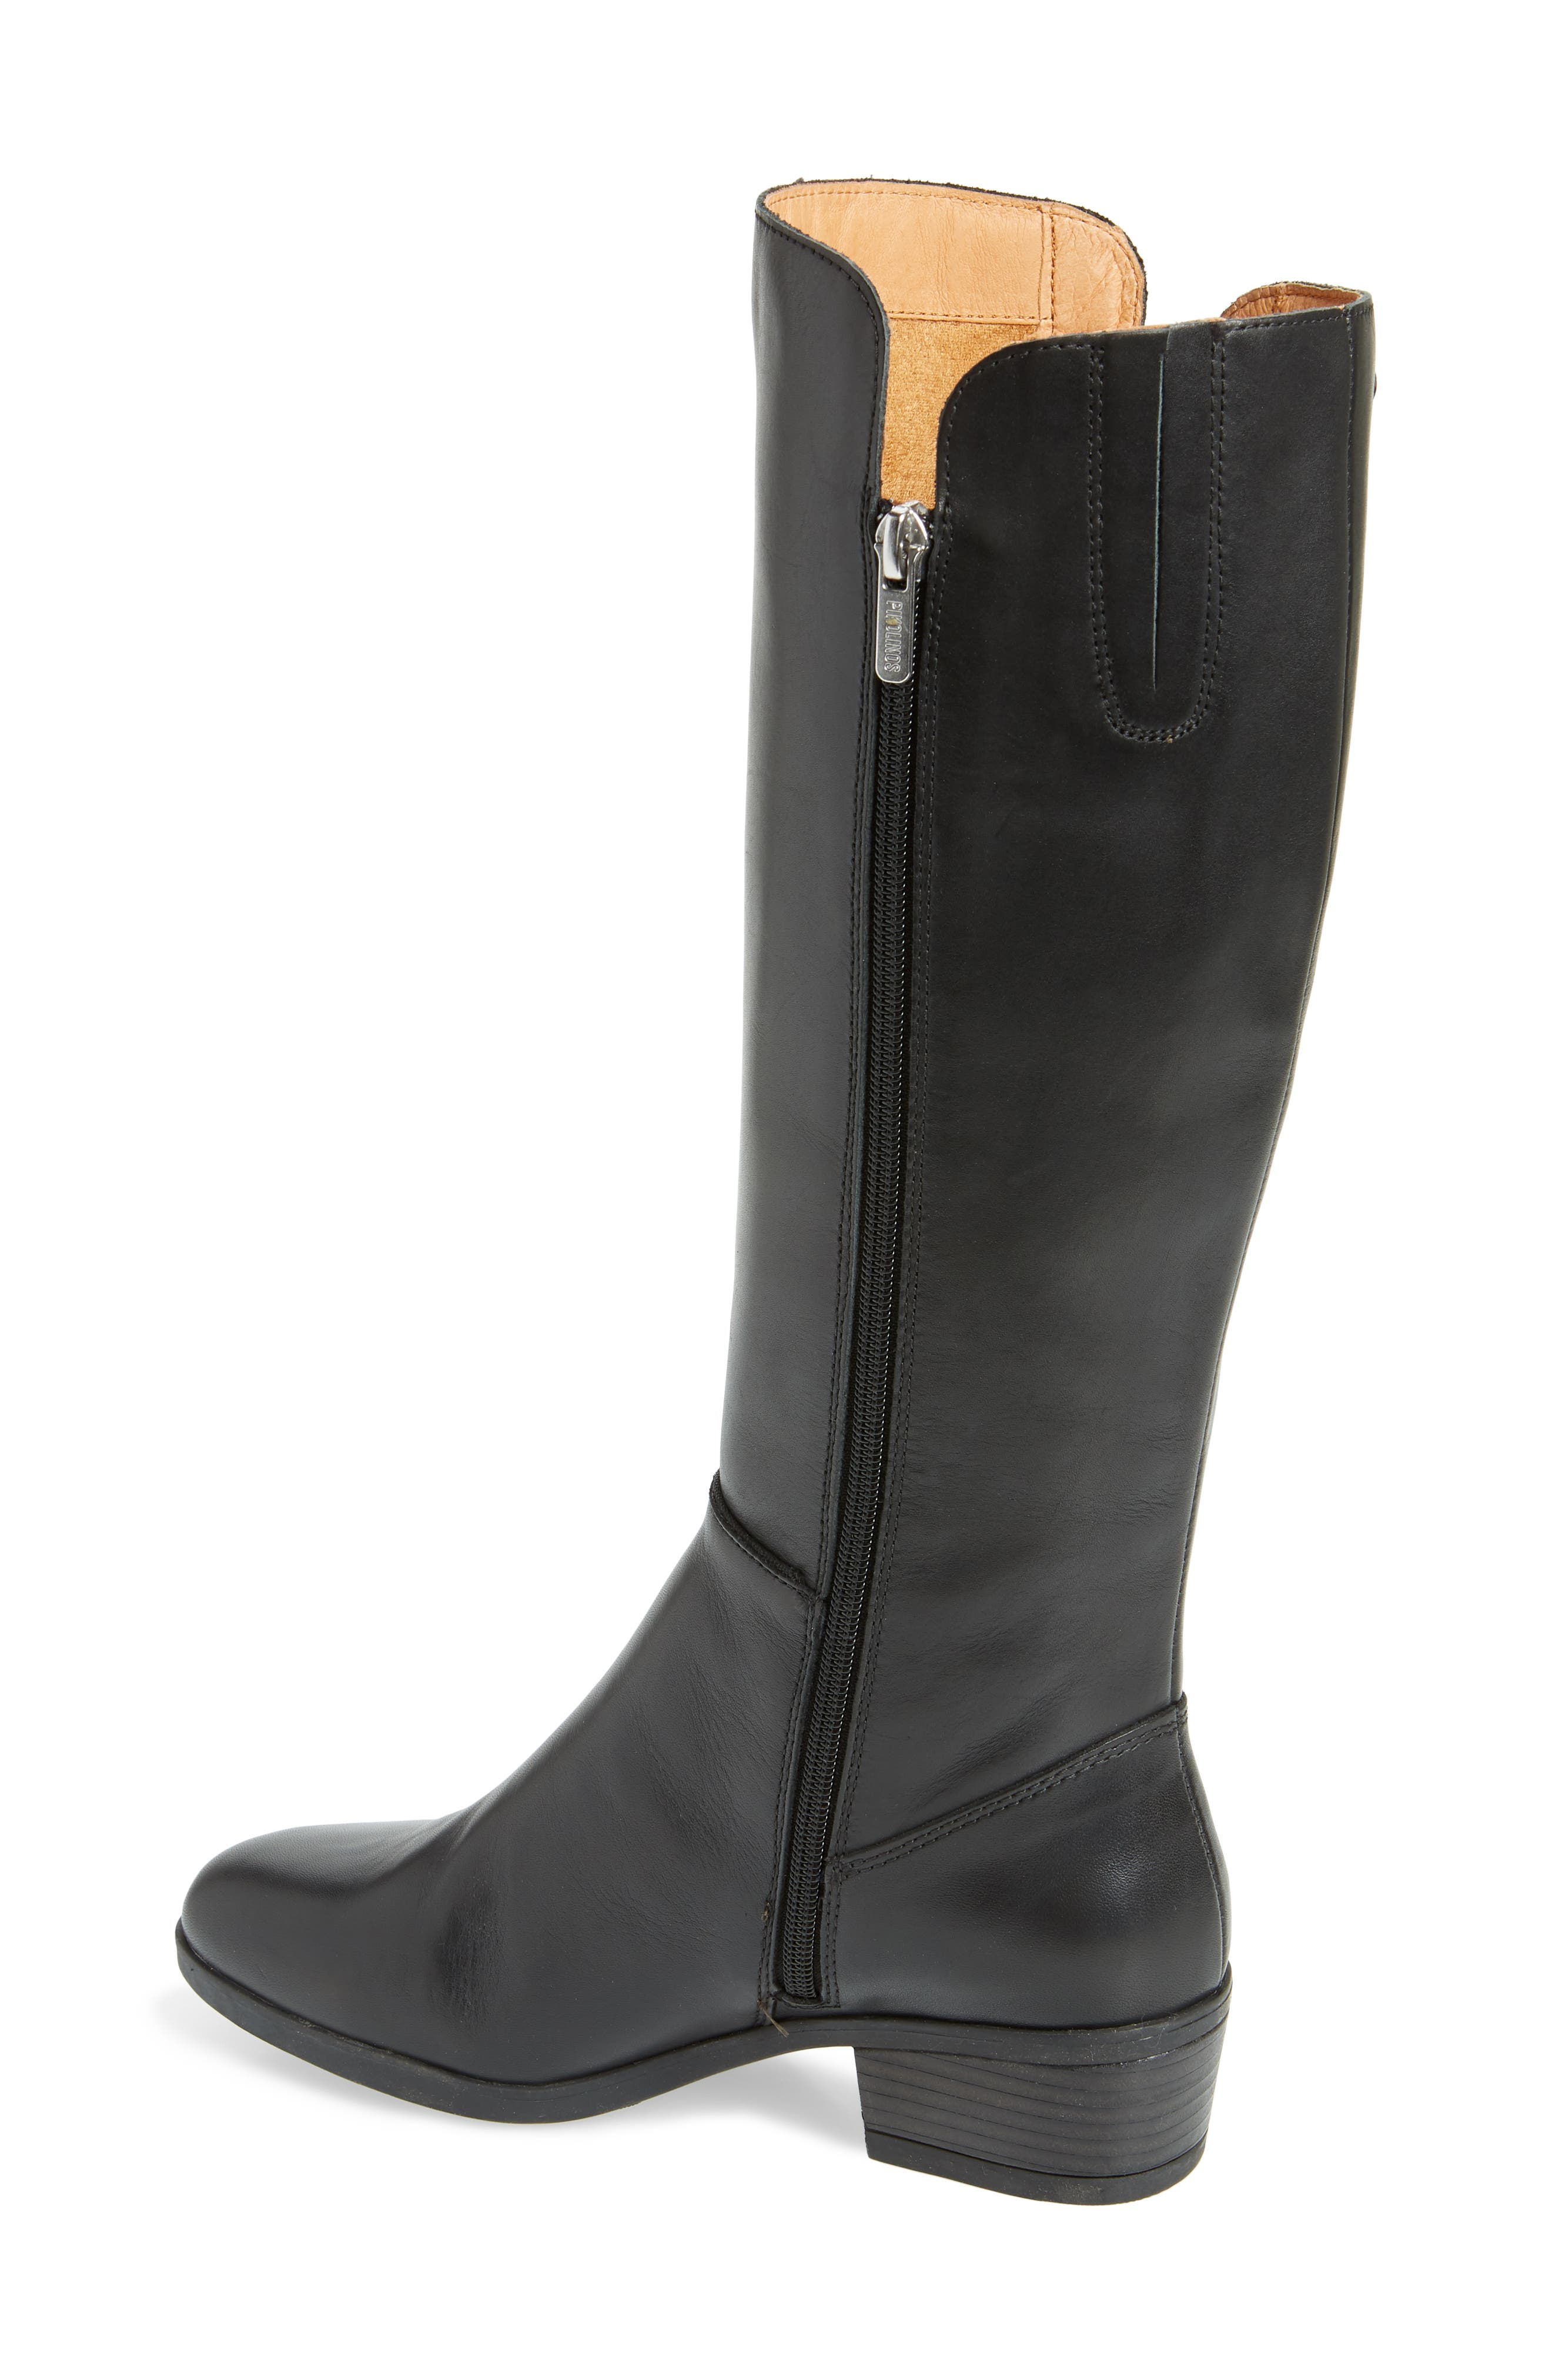 Daroca Knee High Boot,                             Alternate thumbnail 2, color,                             BLACK LEATHER